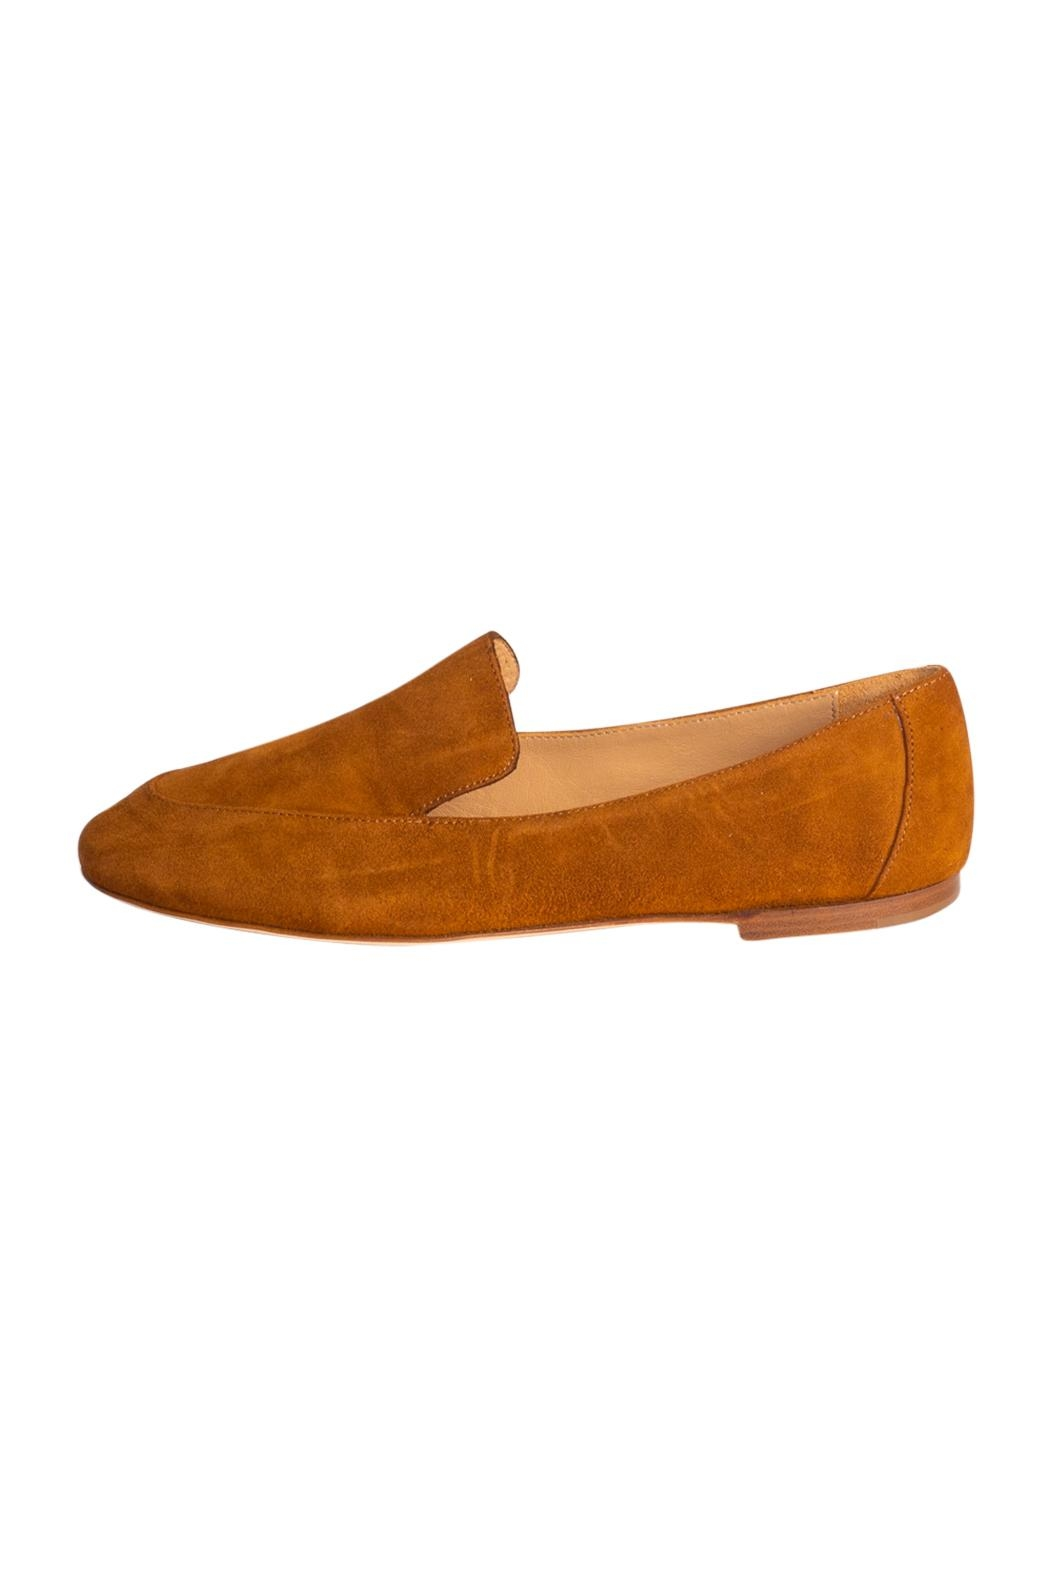 Pascucci Tan Suede Loafers - Main Image